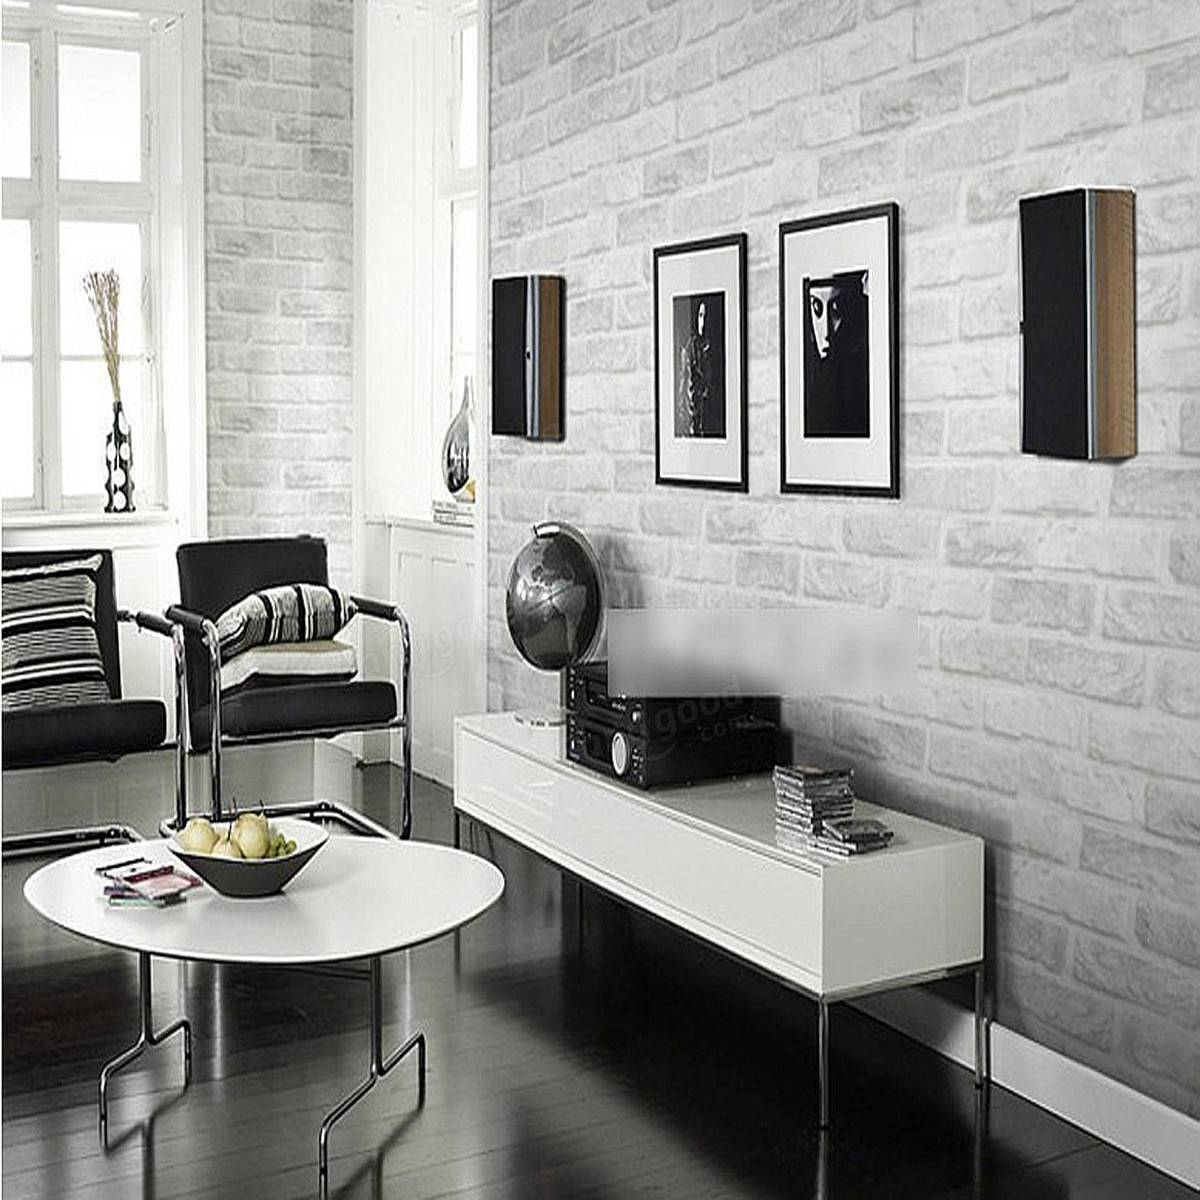 3D Wallpaper For Home 3D Brick Pattern Wallpaper Roll White Grey Textured Wallpaper Home